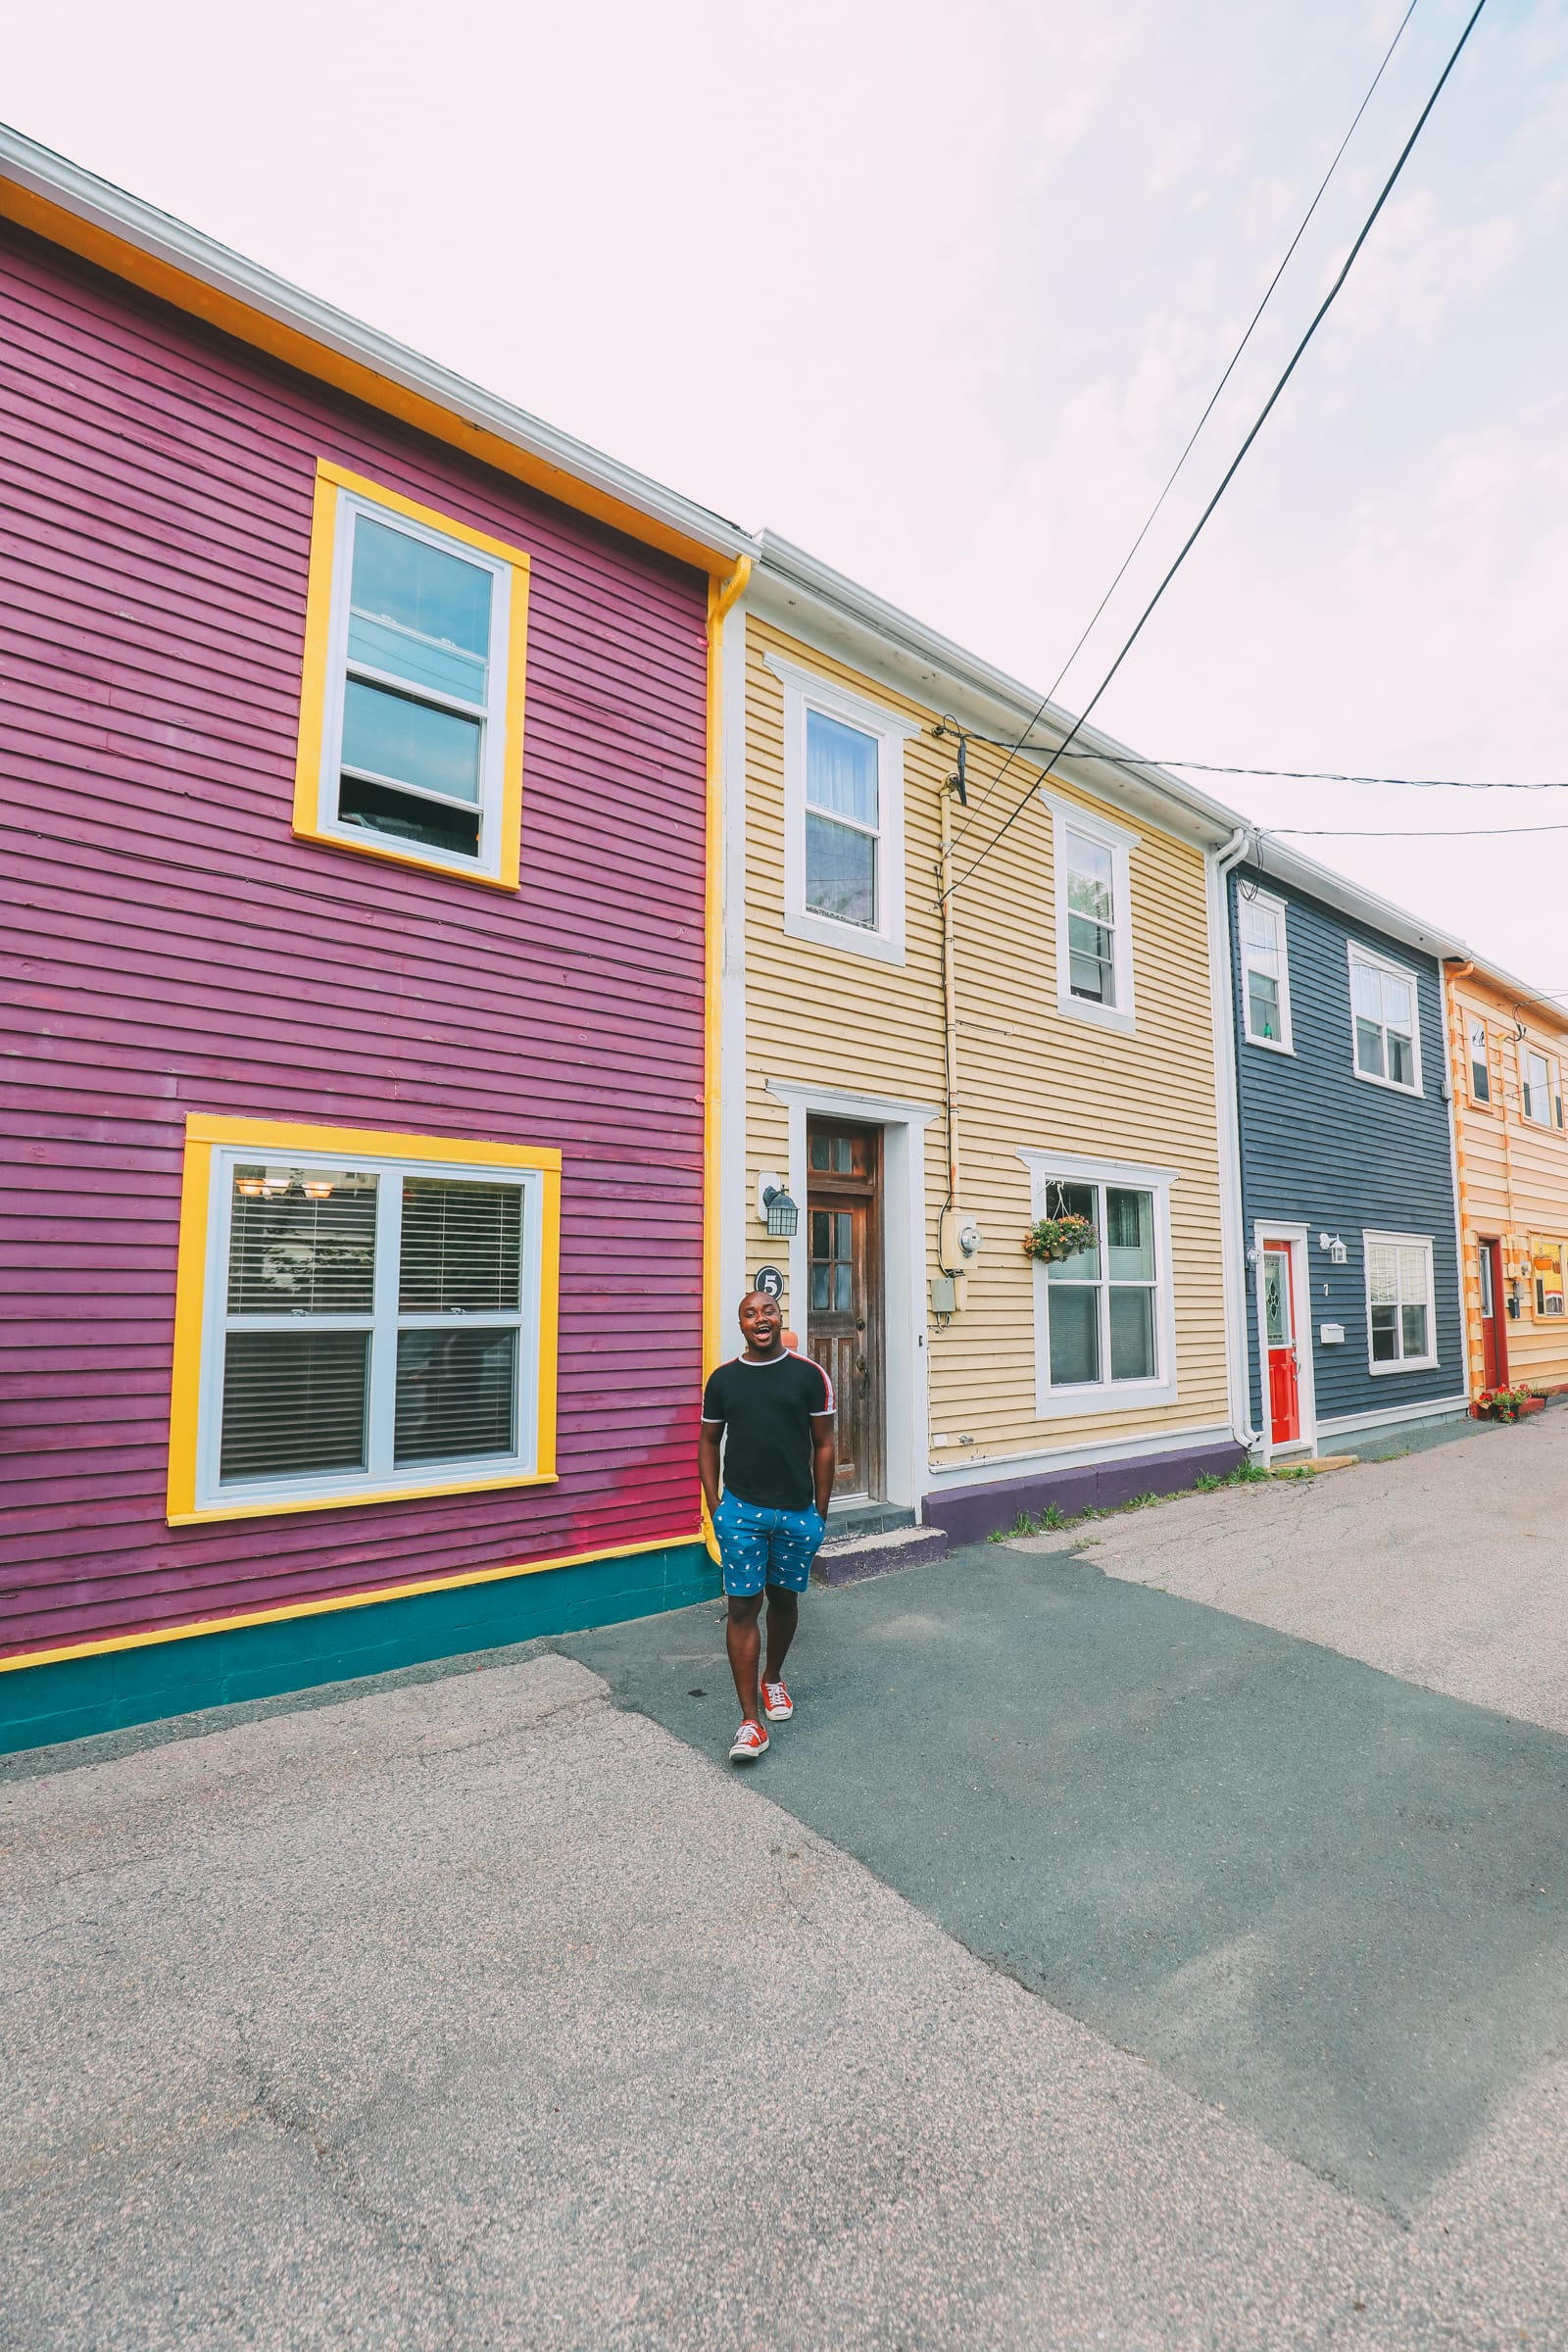 The Colourful Houses Of St John's, Newfoundland (6)